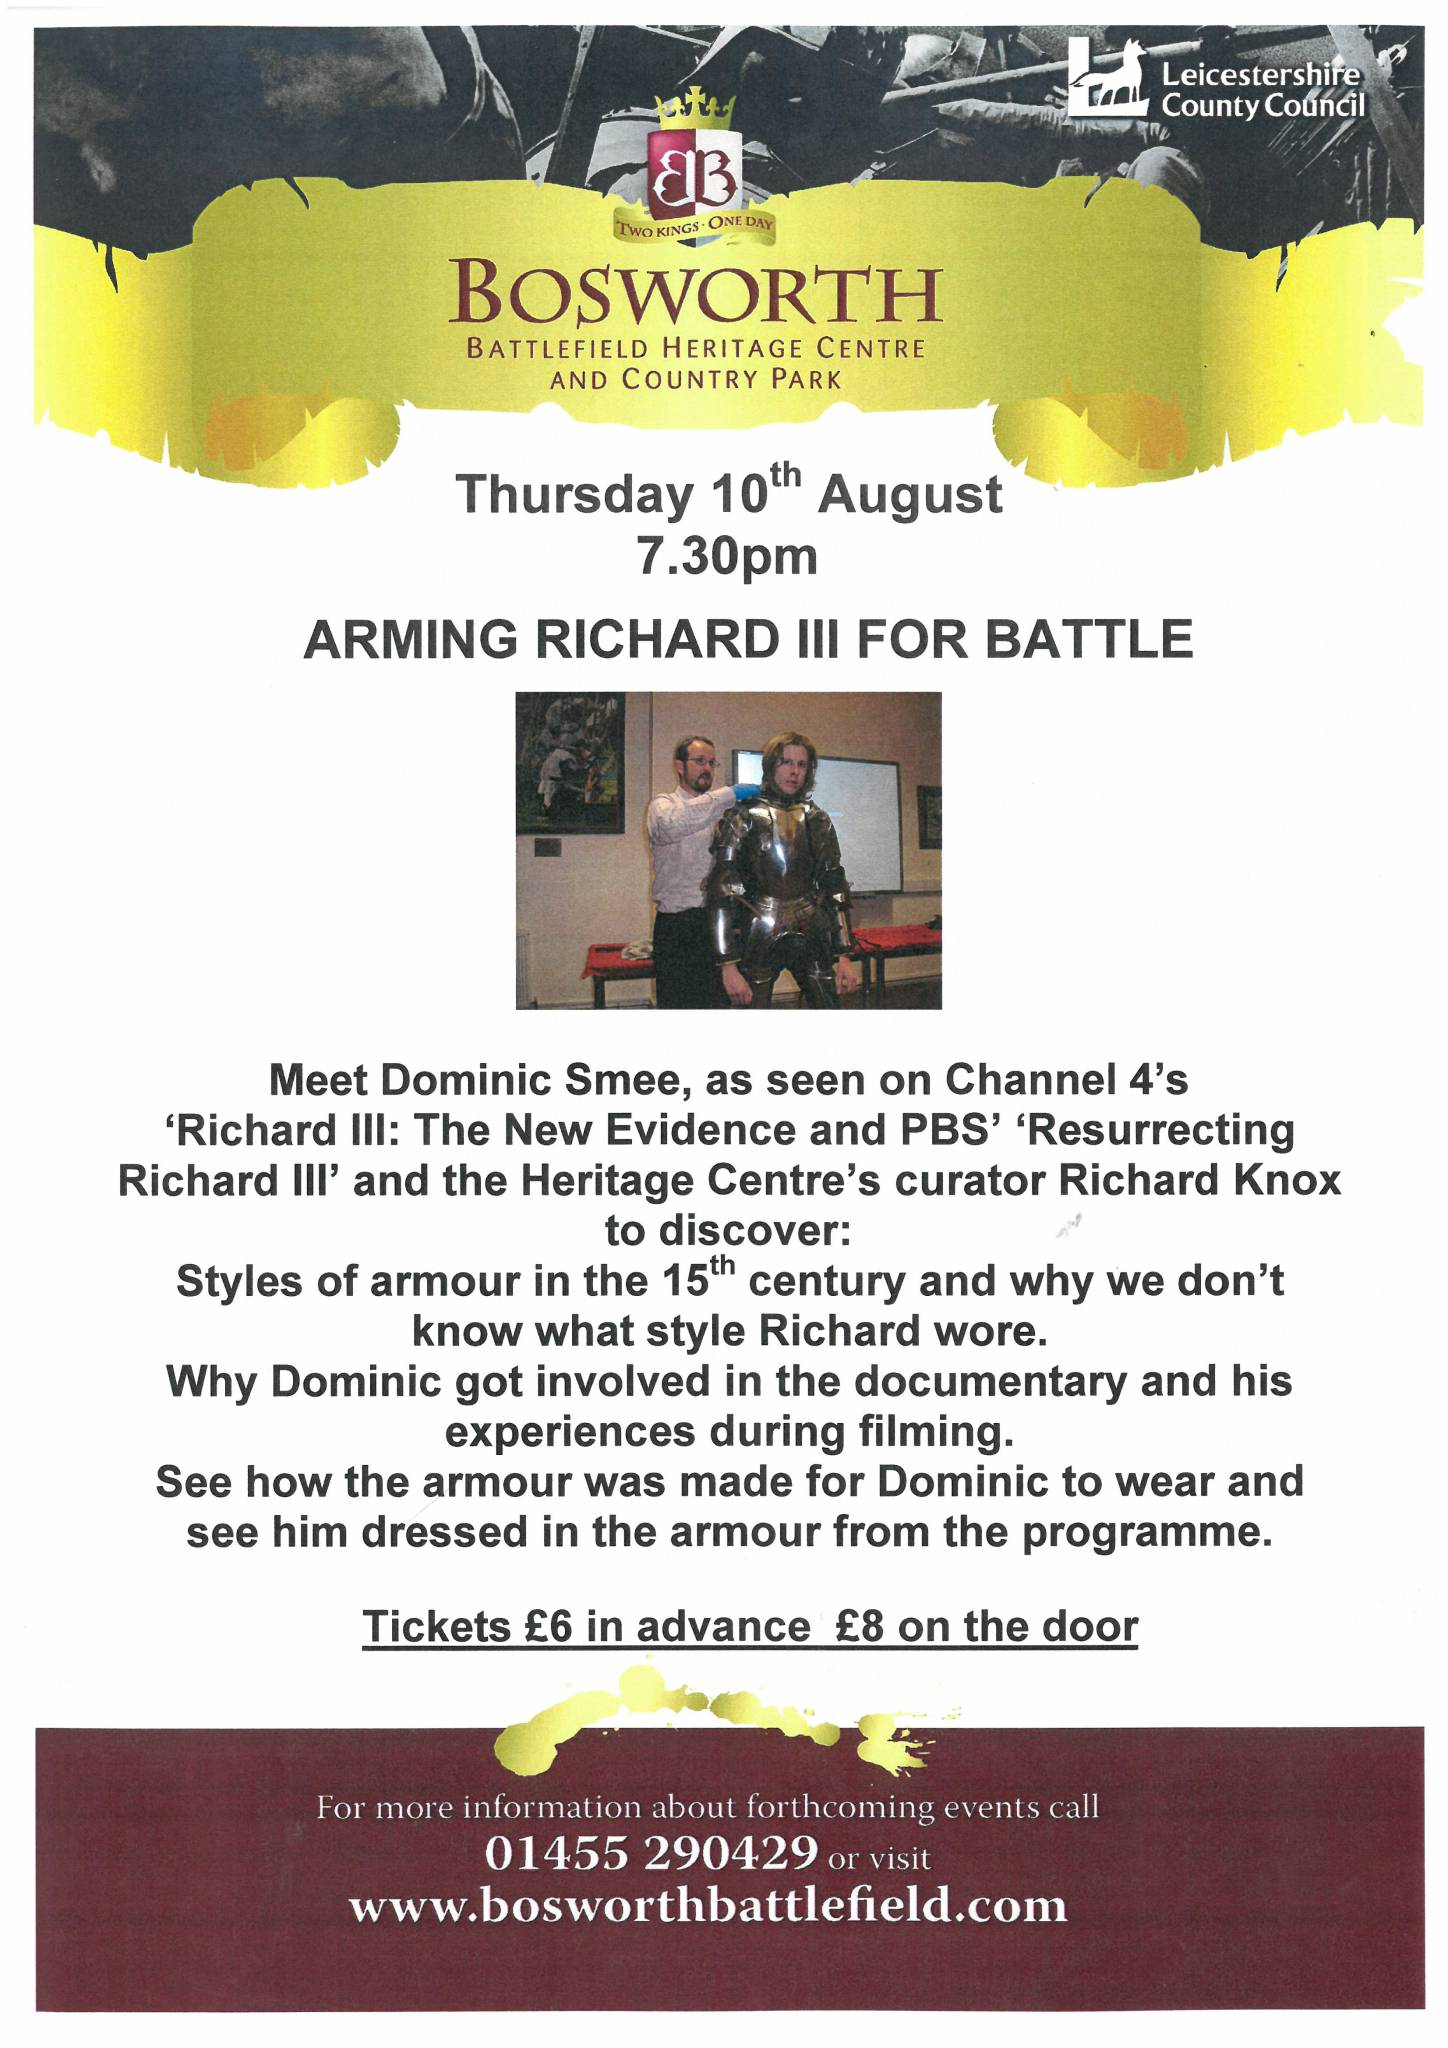 Arming Richard III for Battle - POSTPONED